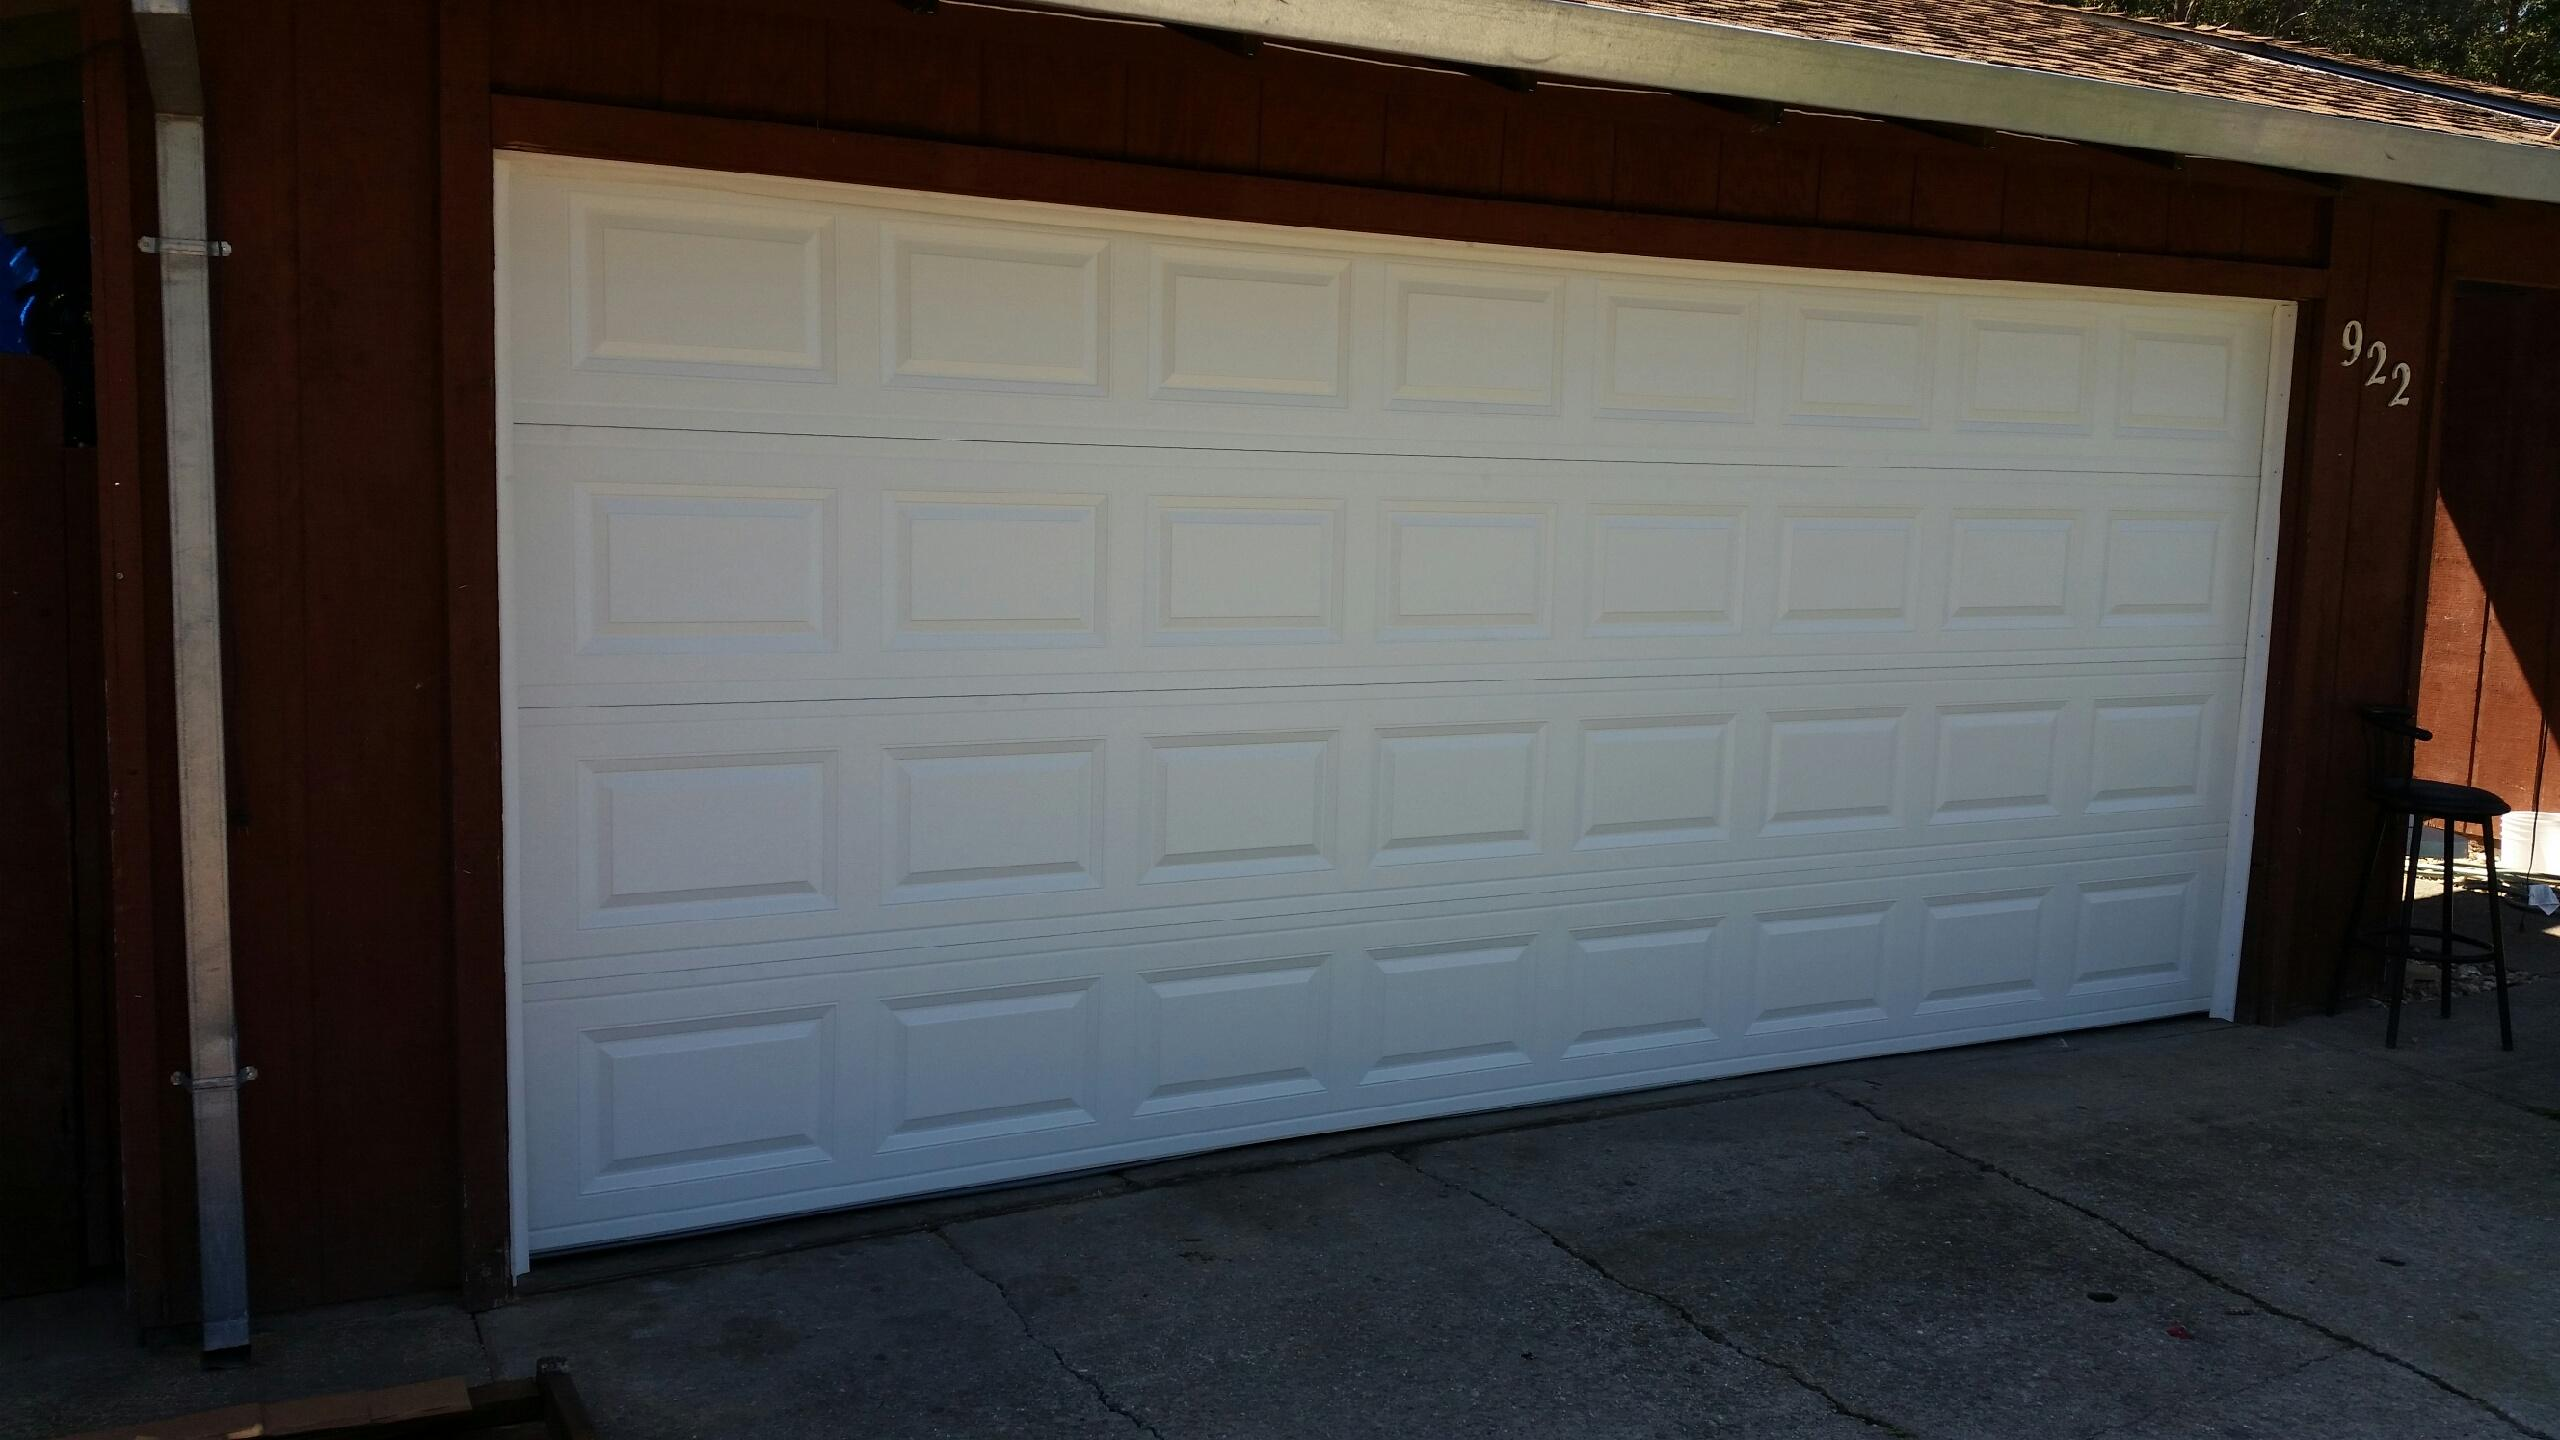 New Replacement Garage Door www.bestgarage-door